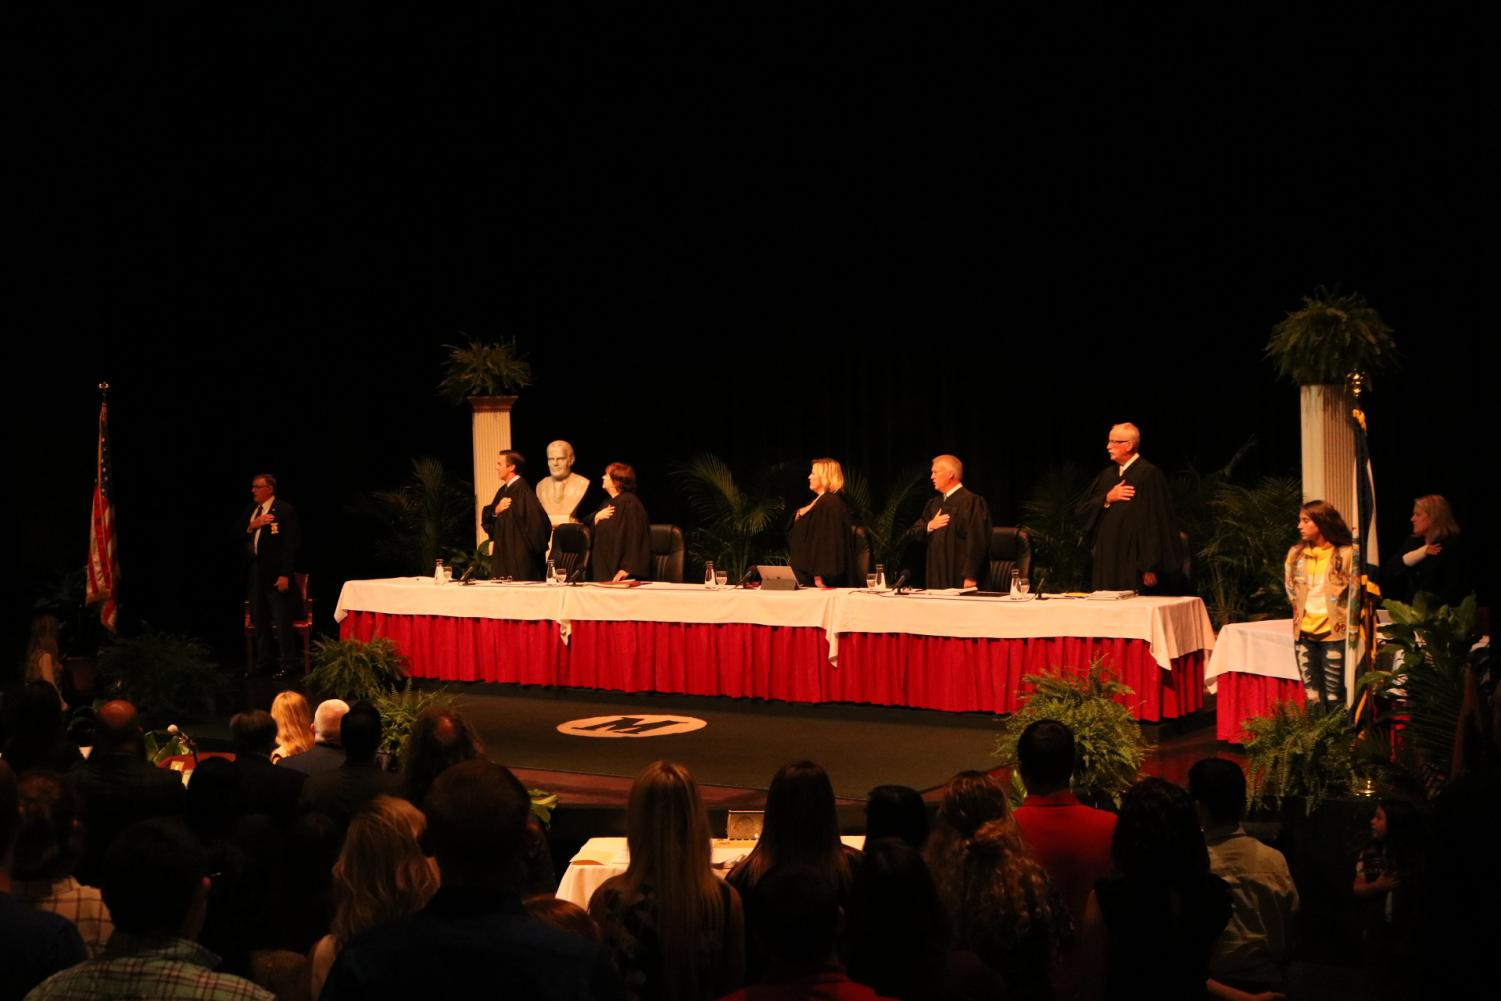 West Virginia Supreme Court Justice Evan H. Jenkins, Justice Margaret L. Workman, Chief Justice Elizabeth D. Walker, Justice Tim Armstead and Justice John A. Hutchinson pledge allegiance to the U.S. flag while meeting at the Joan C. Edwards Performing Arts Center to hear cases in front of a group of students and community members Sept. 11, 2019.